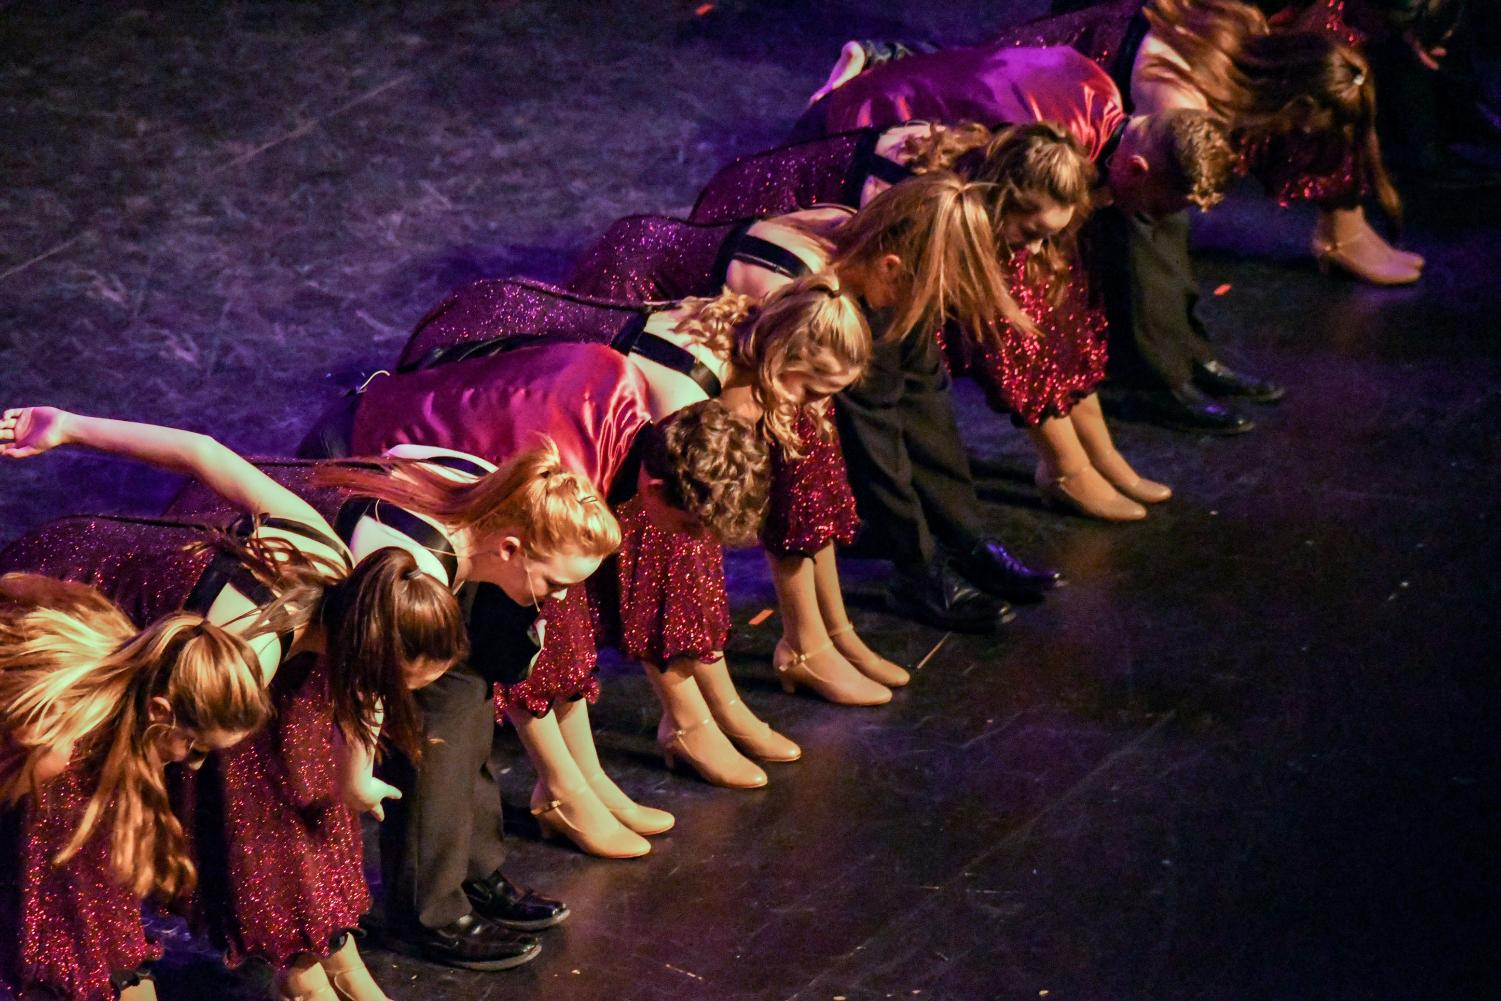 Stroudsburg students bowing after an amazing show.